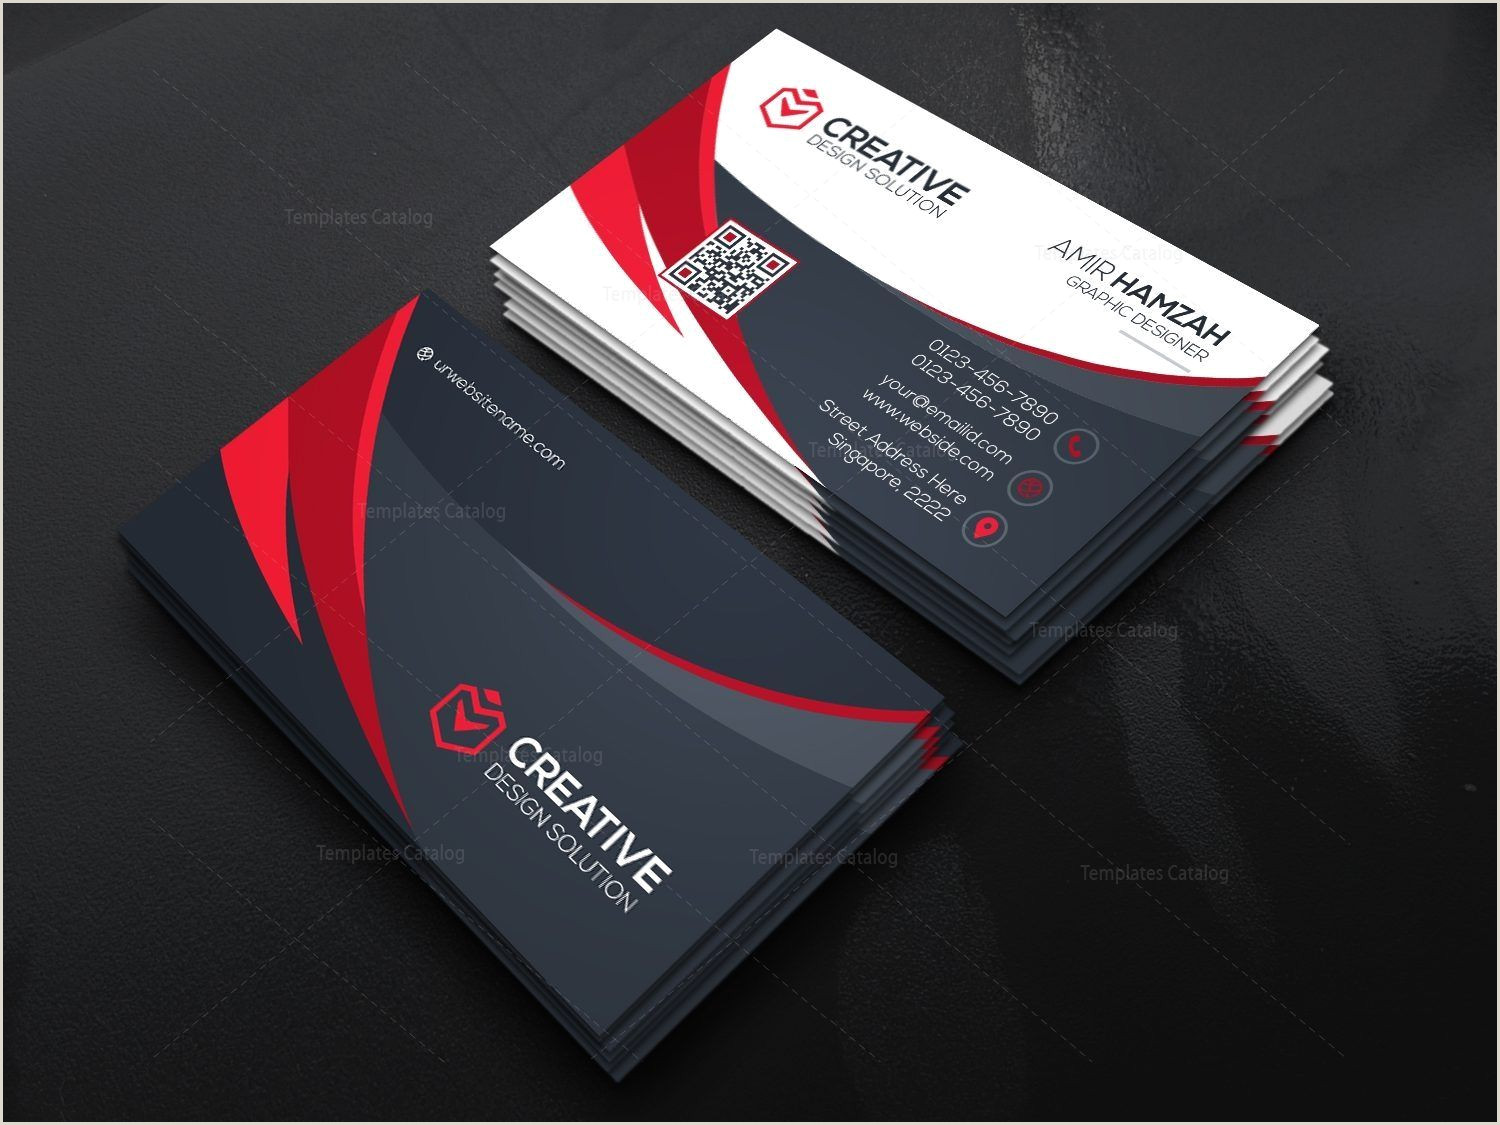 Best Way To Store Business Cards Stylish Psd Business Card Templates Graphic Templates